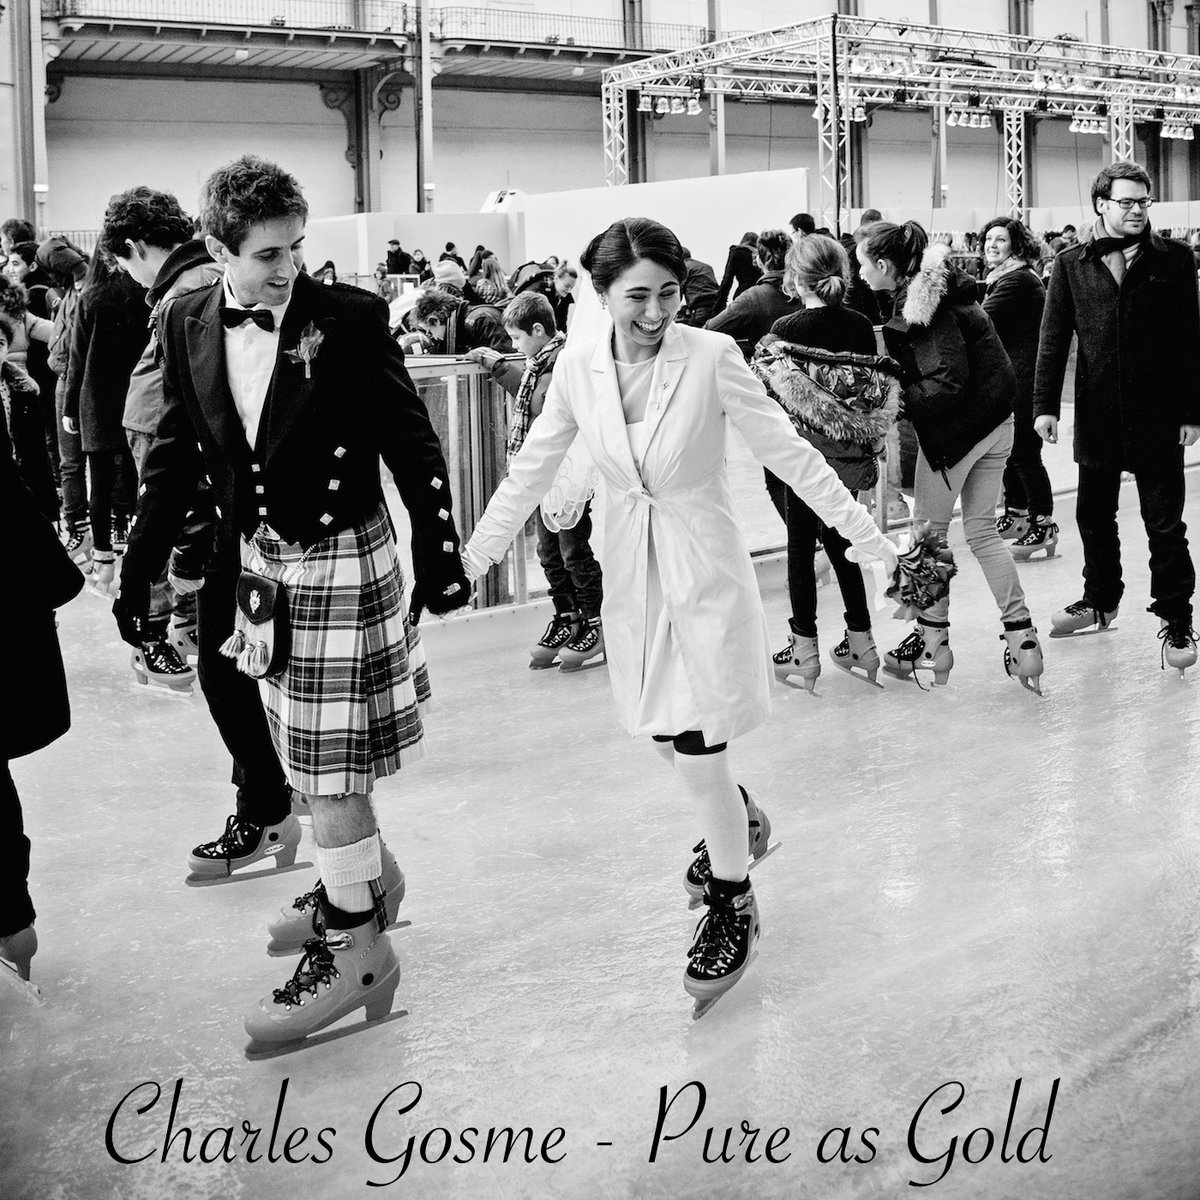 Pure as Gold by Charles Gosme